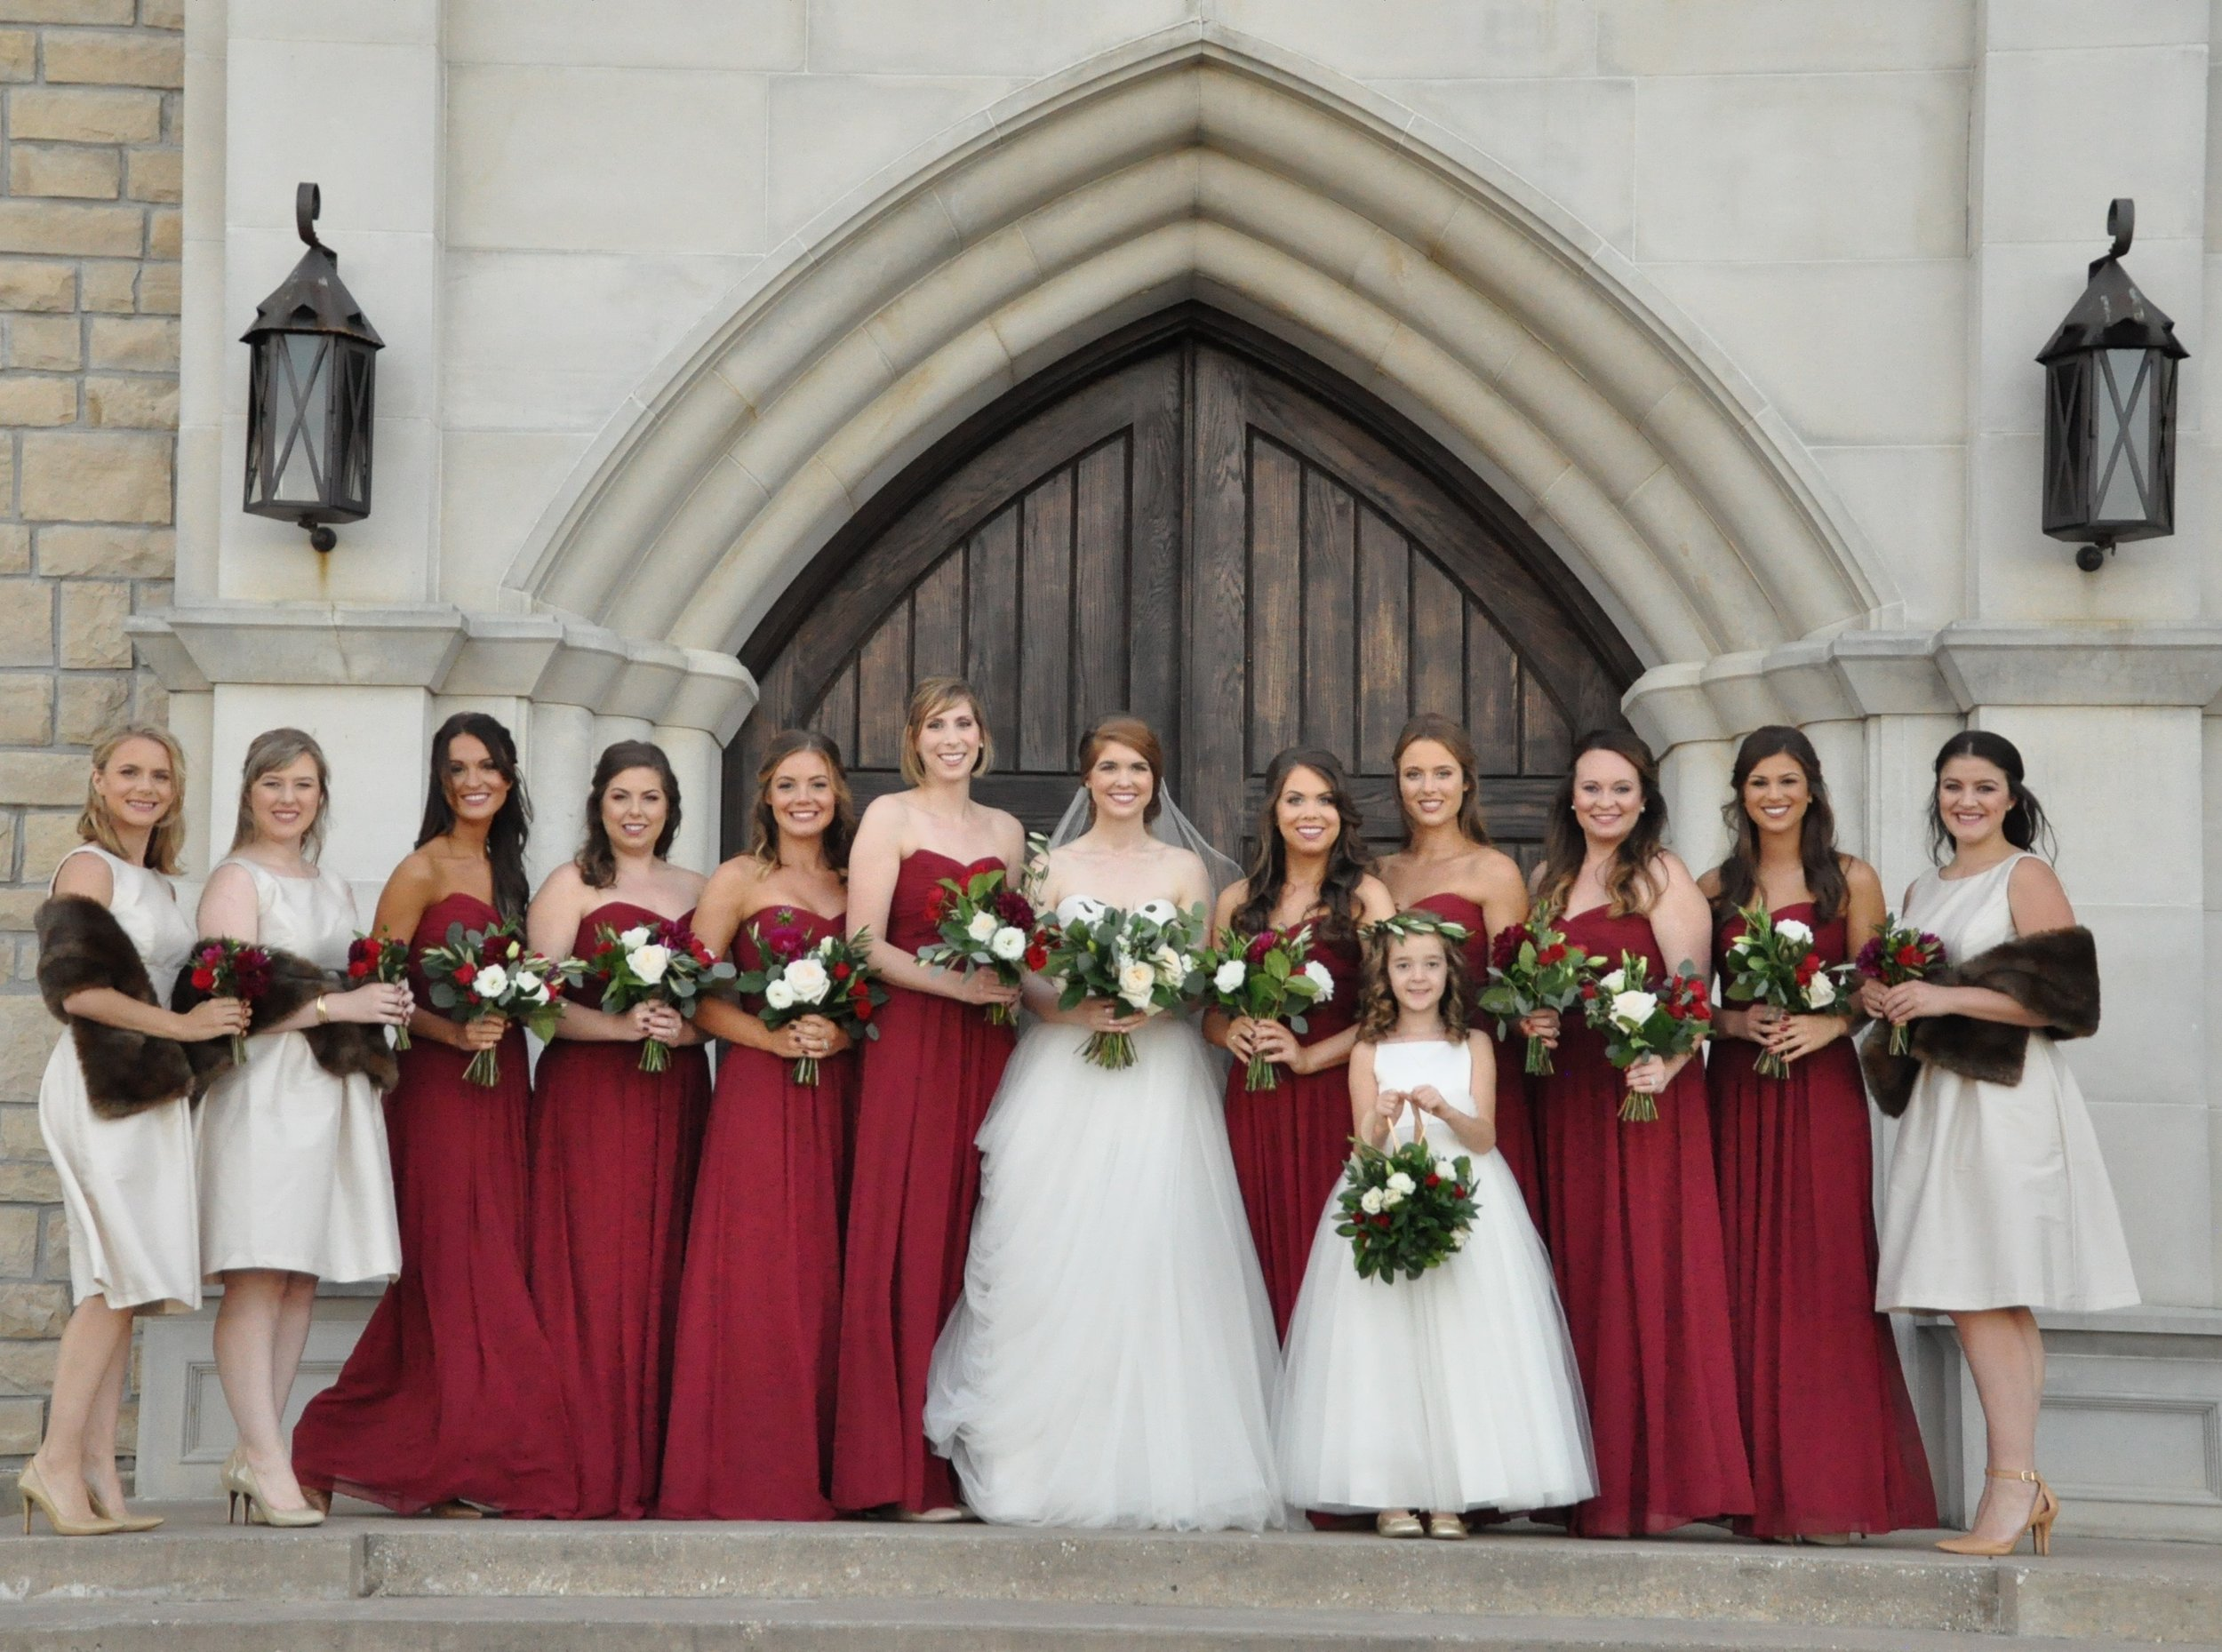 where to get married in dallas, places to get married in dallas, rockwall, the castle at rockwall, wedding tips, dallas bride, dfw wedding, heidi lockhart somes photography, grand slam glam